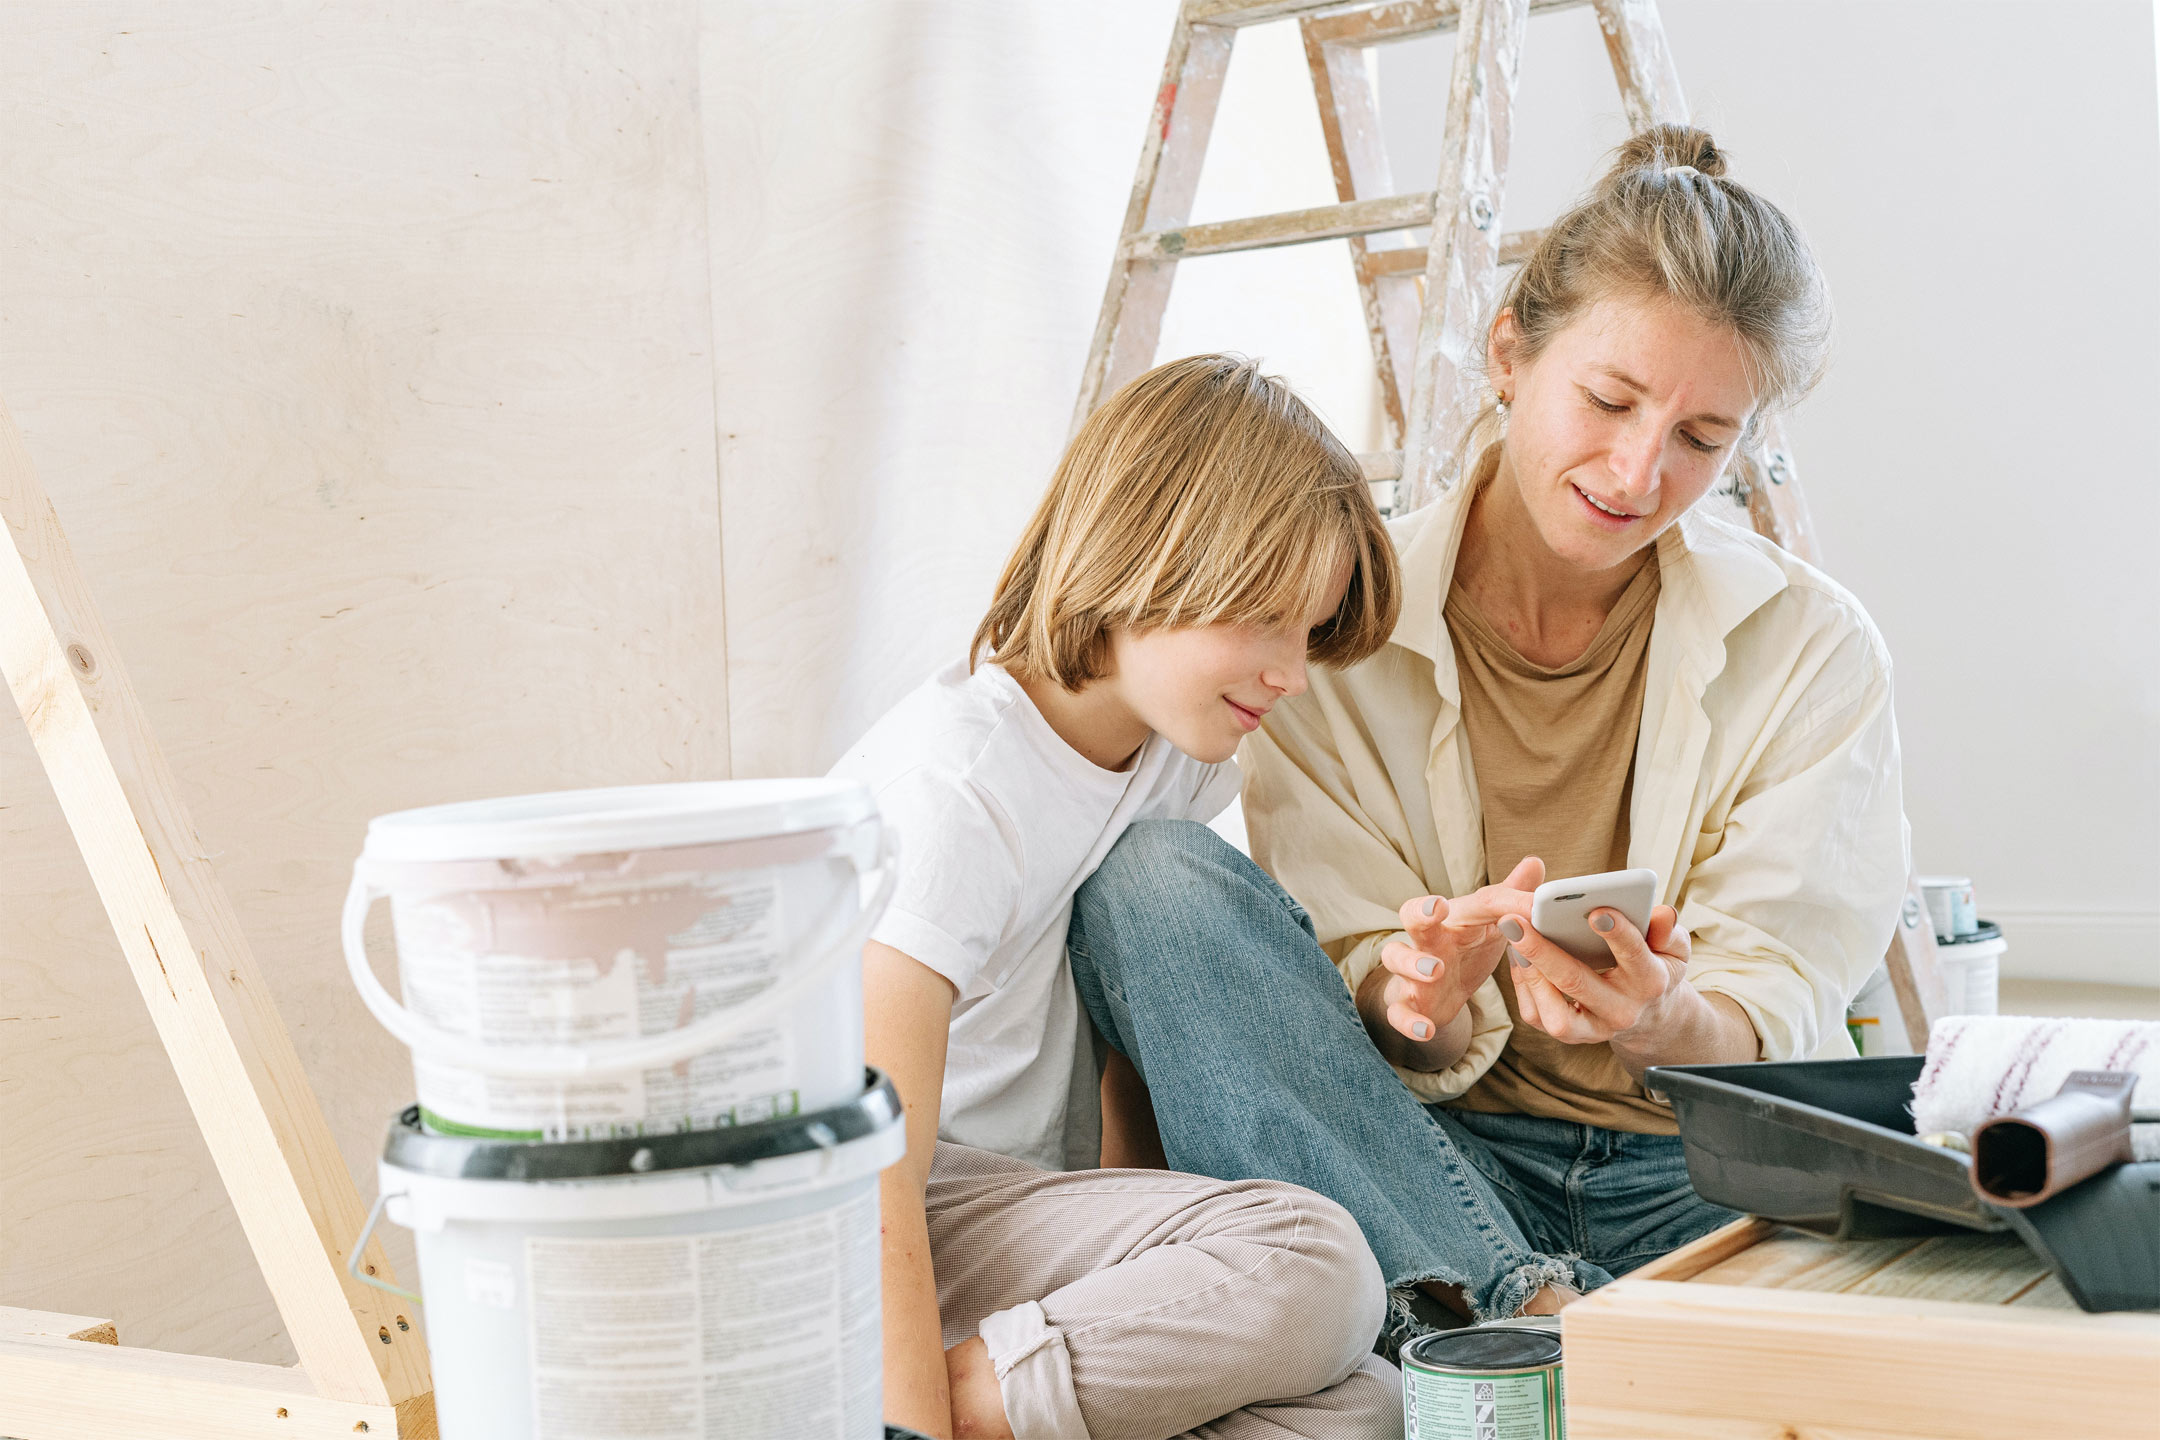 mother-teen-redecorating-on-phone2160